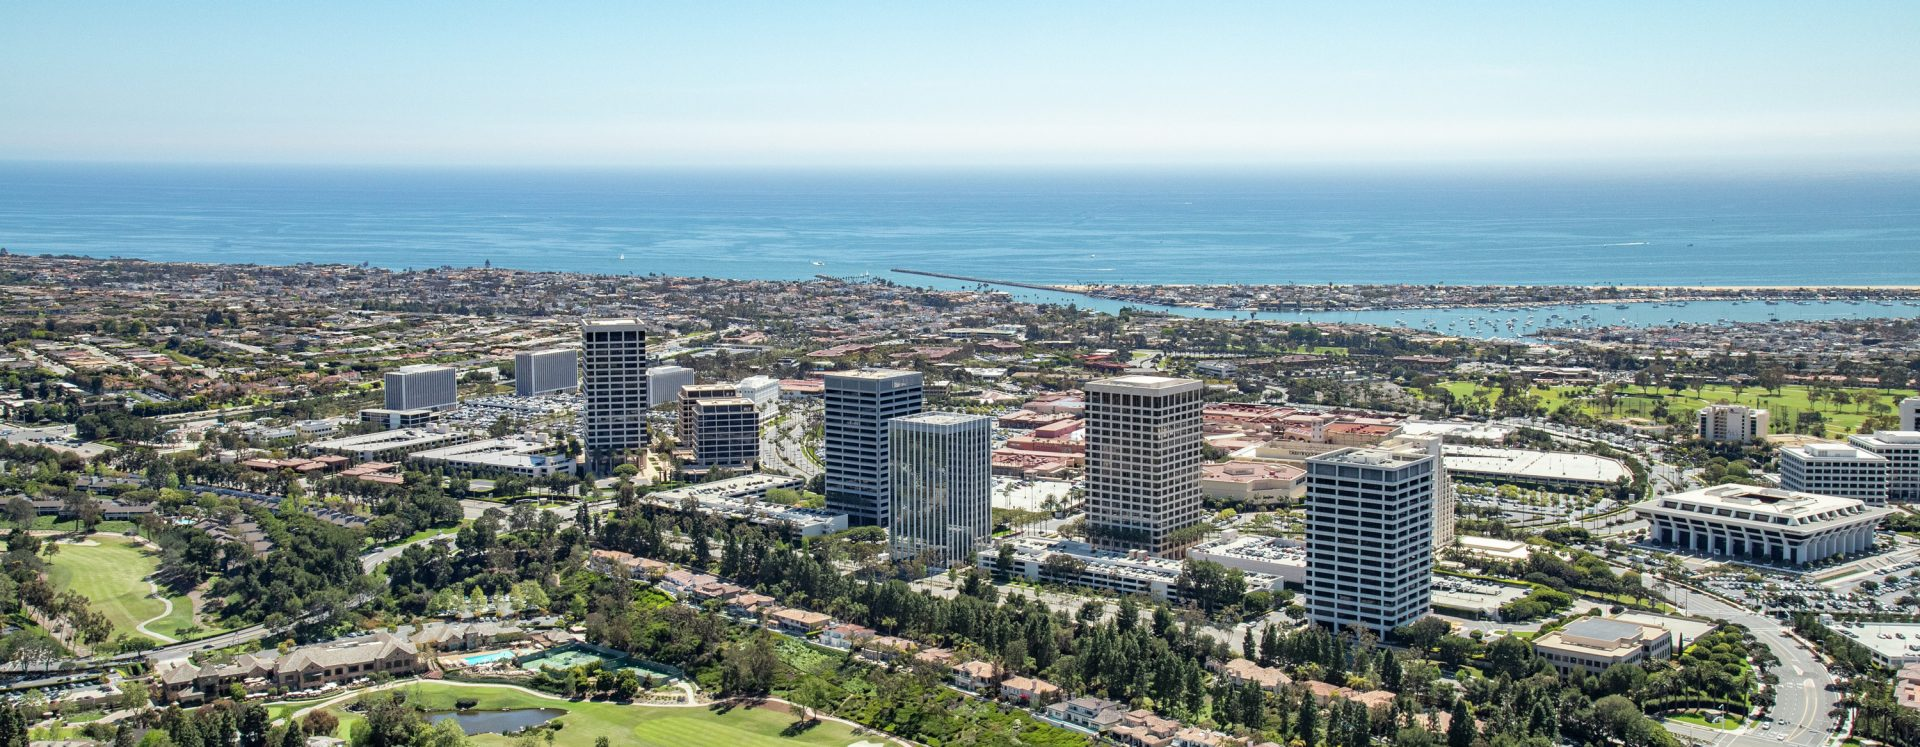 Aerial photography of Newport Center in Newport Beach, CA